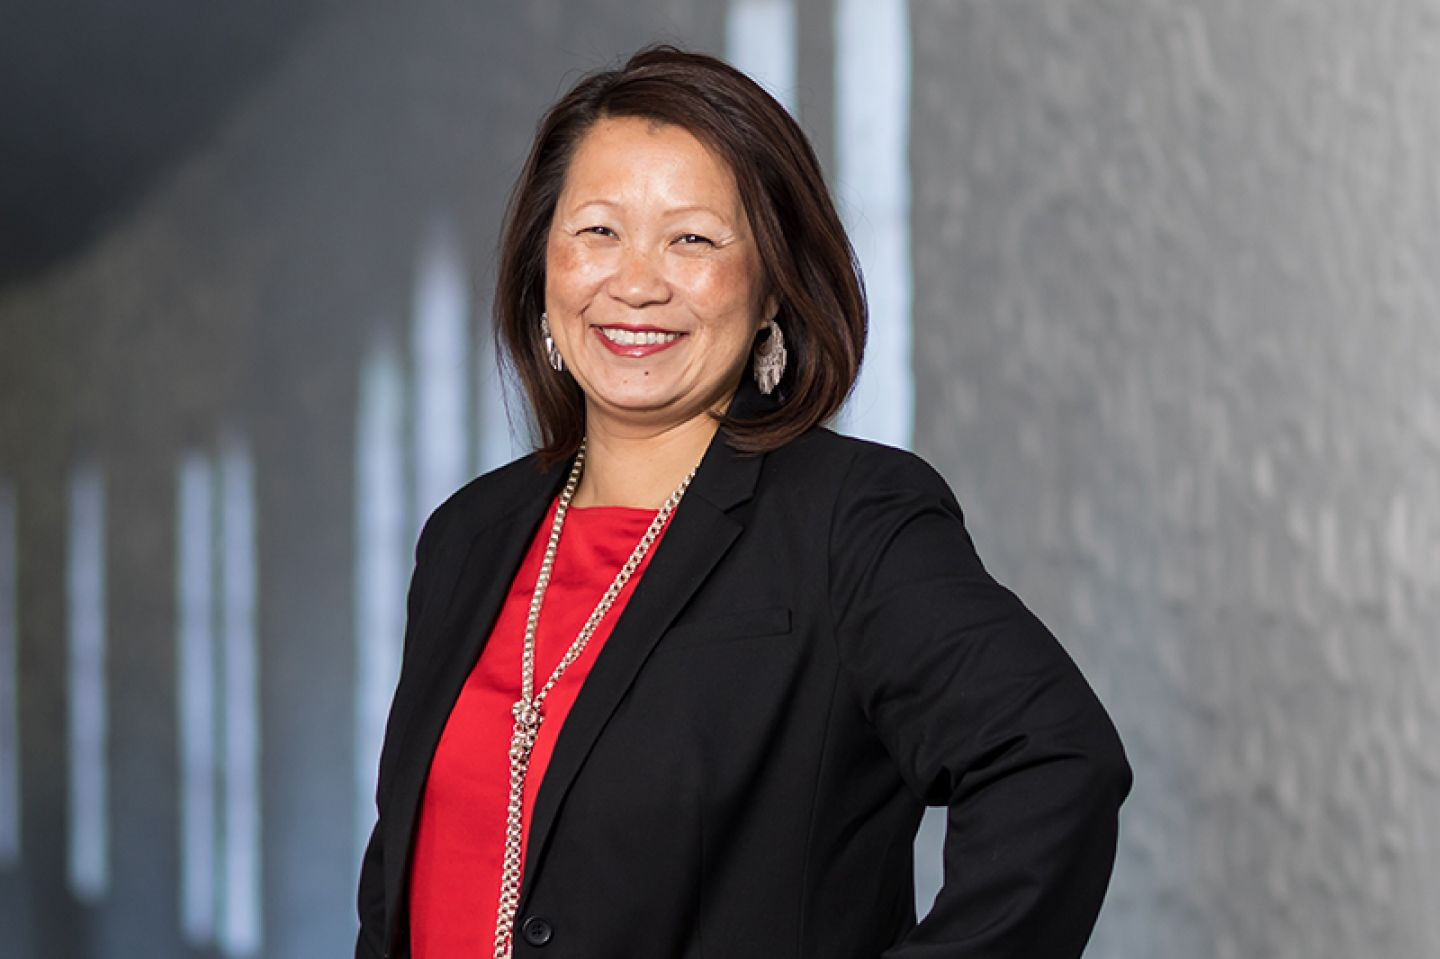 May Thao-Schuck, VP of Career and Professional Development